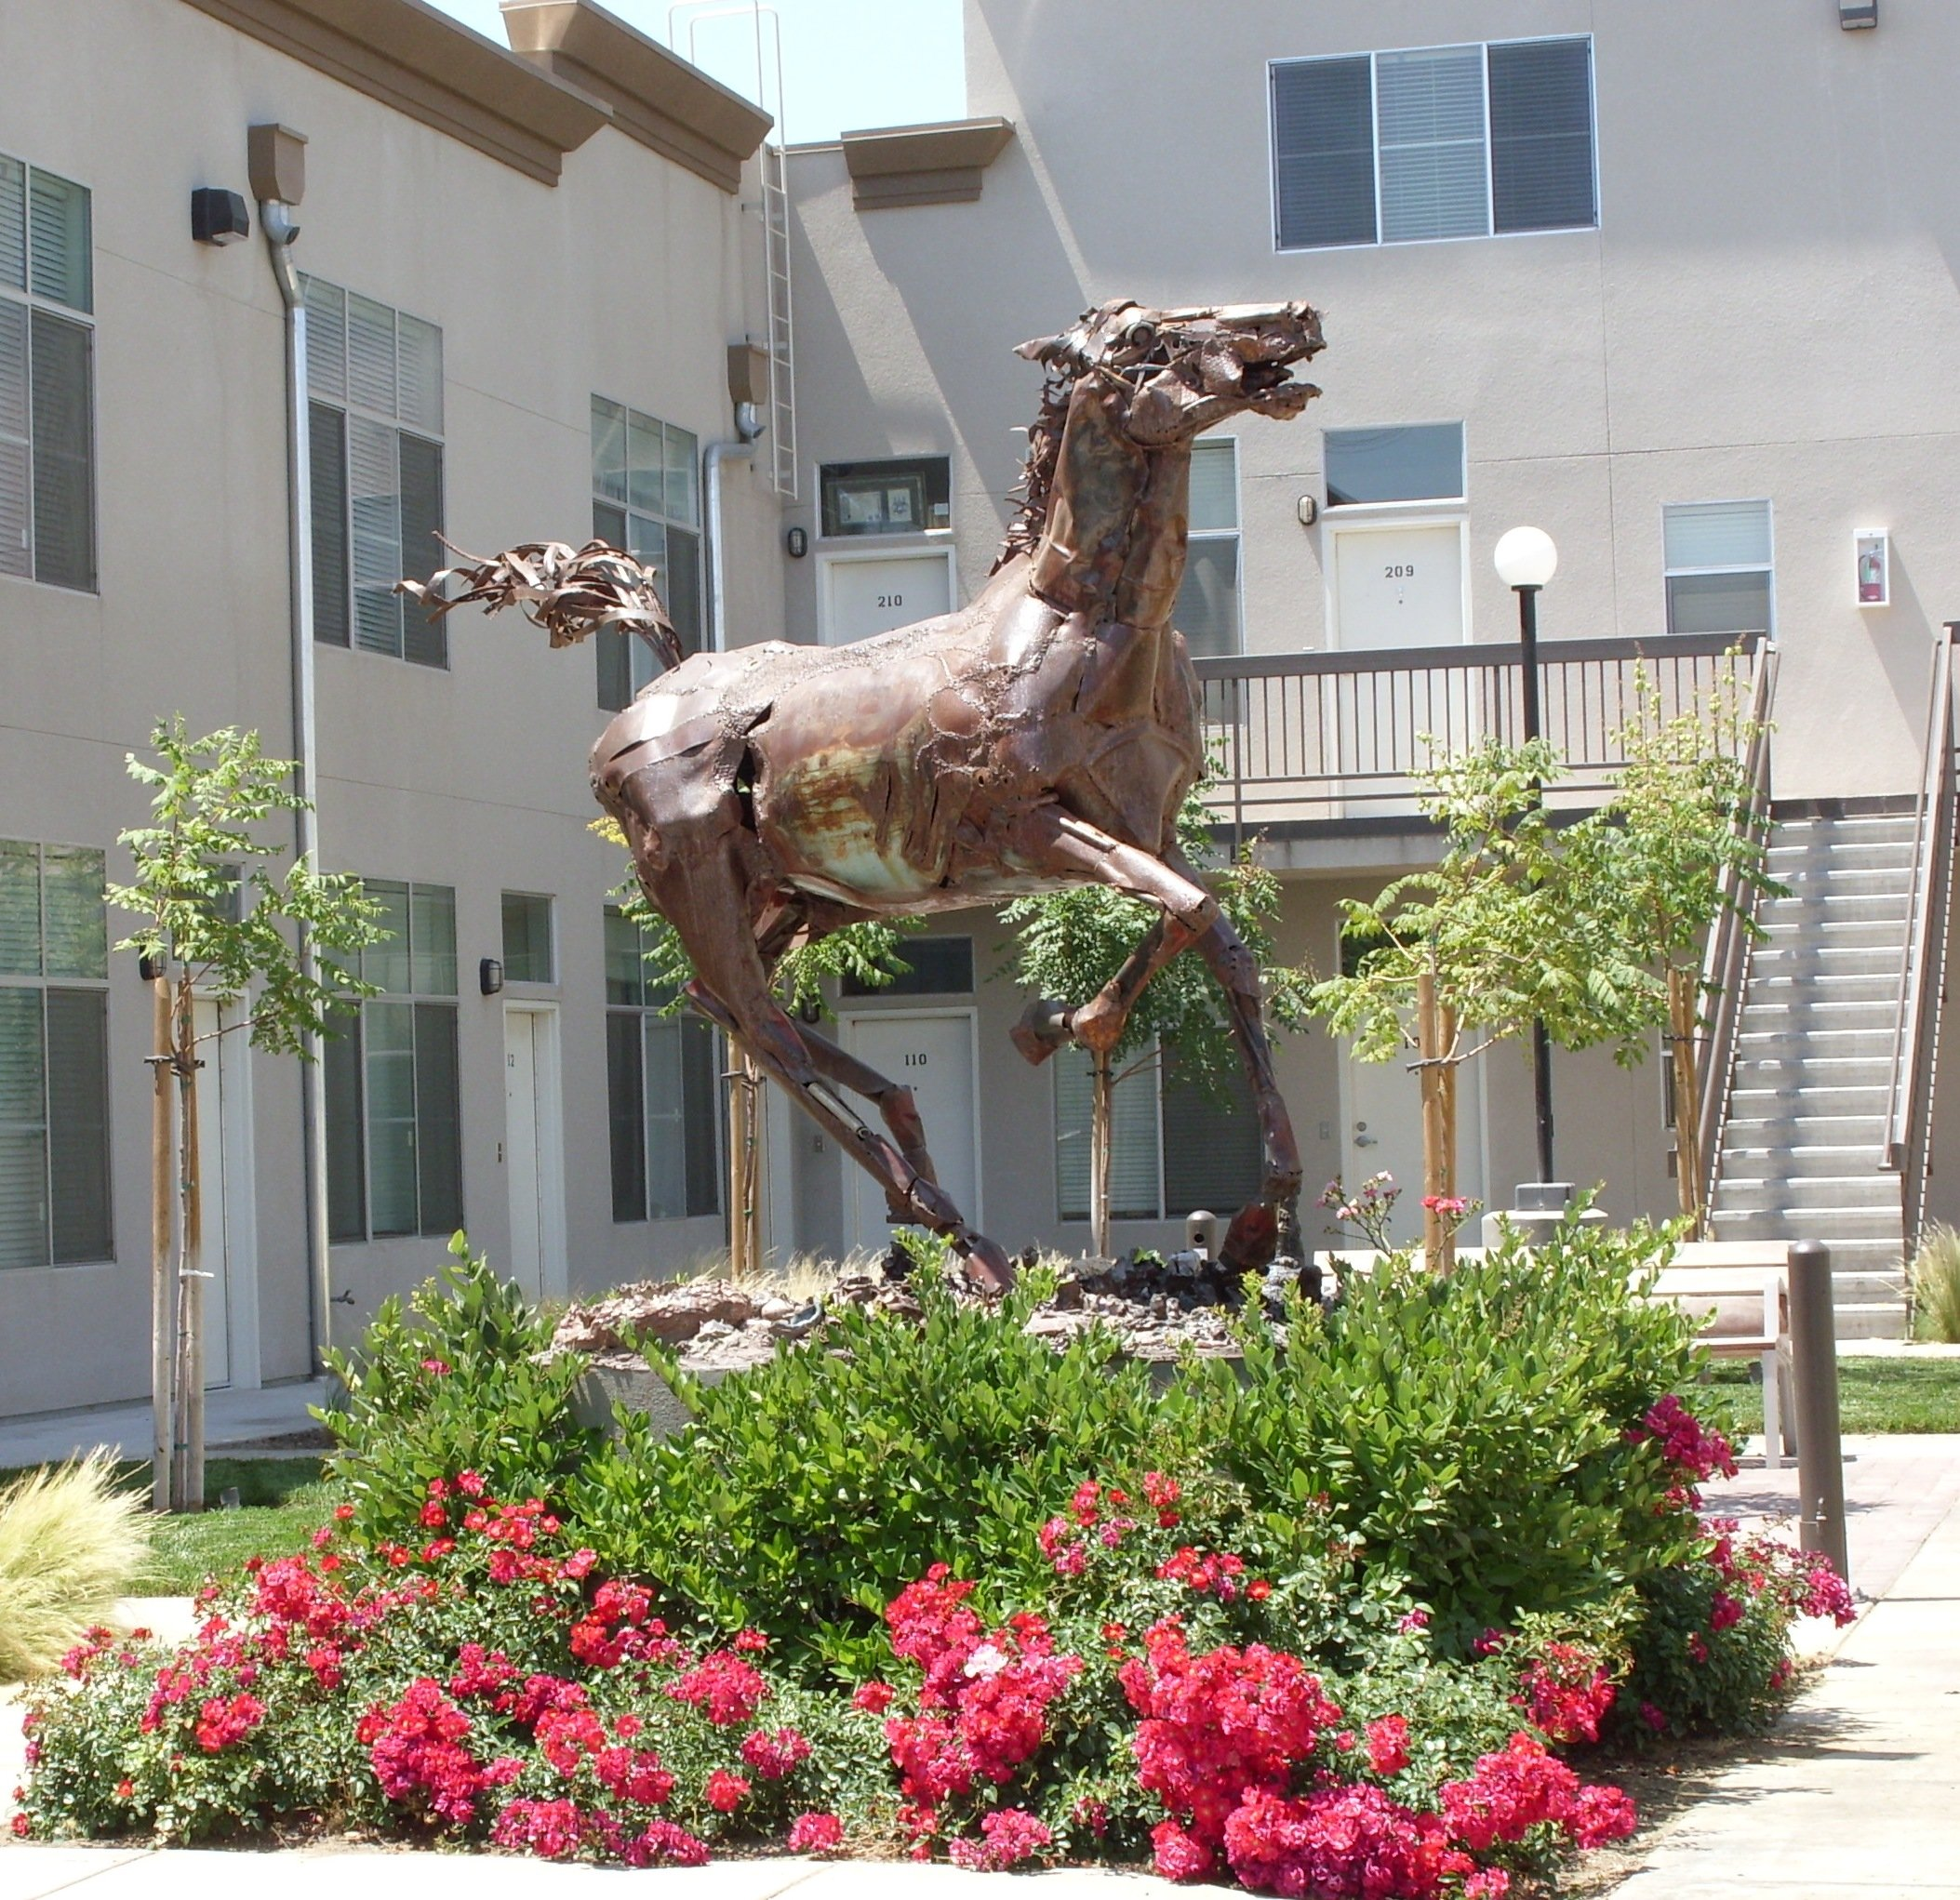 Vagabond Lofts Courtyard and Horse Statue